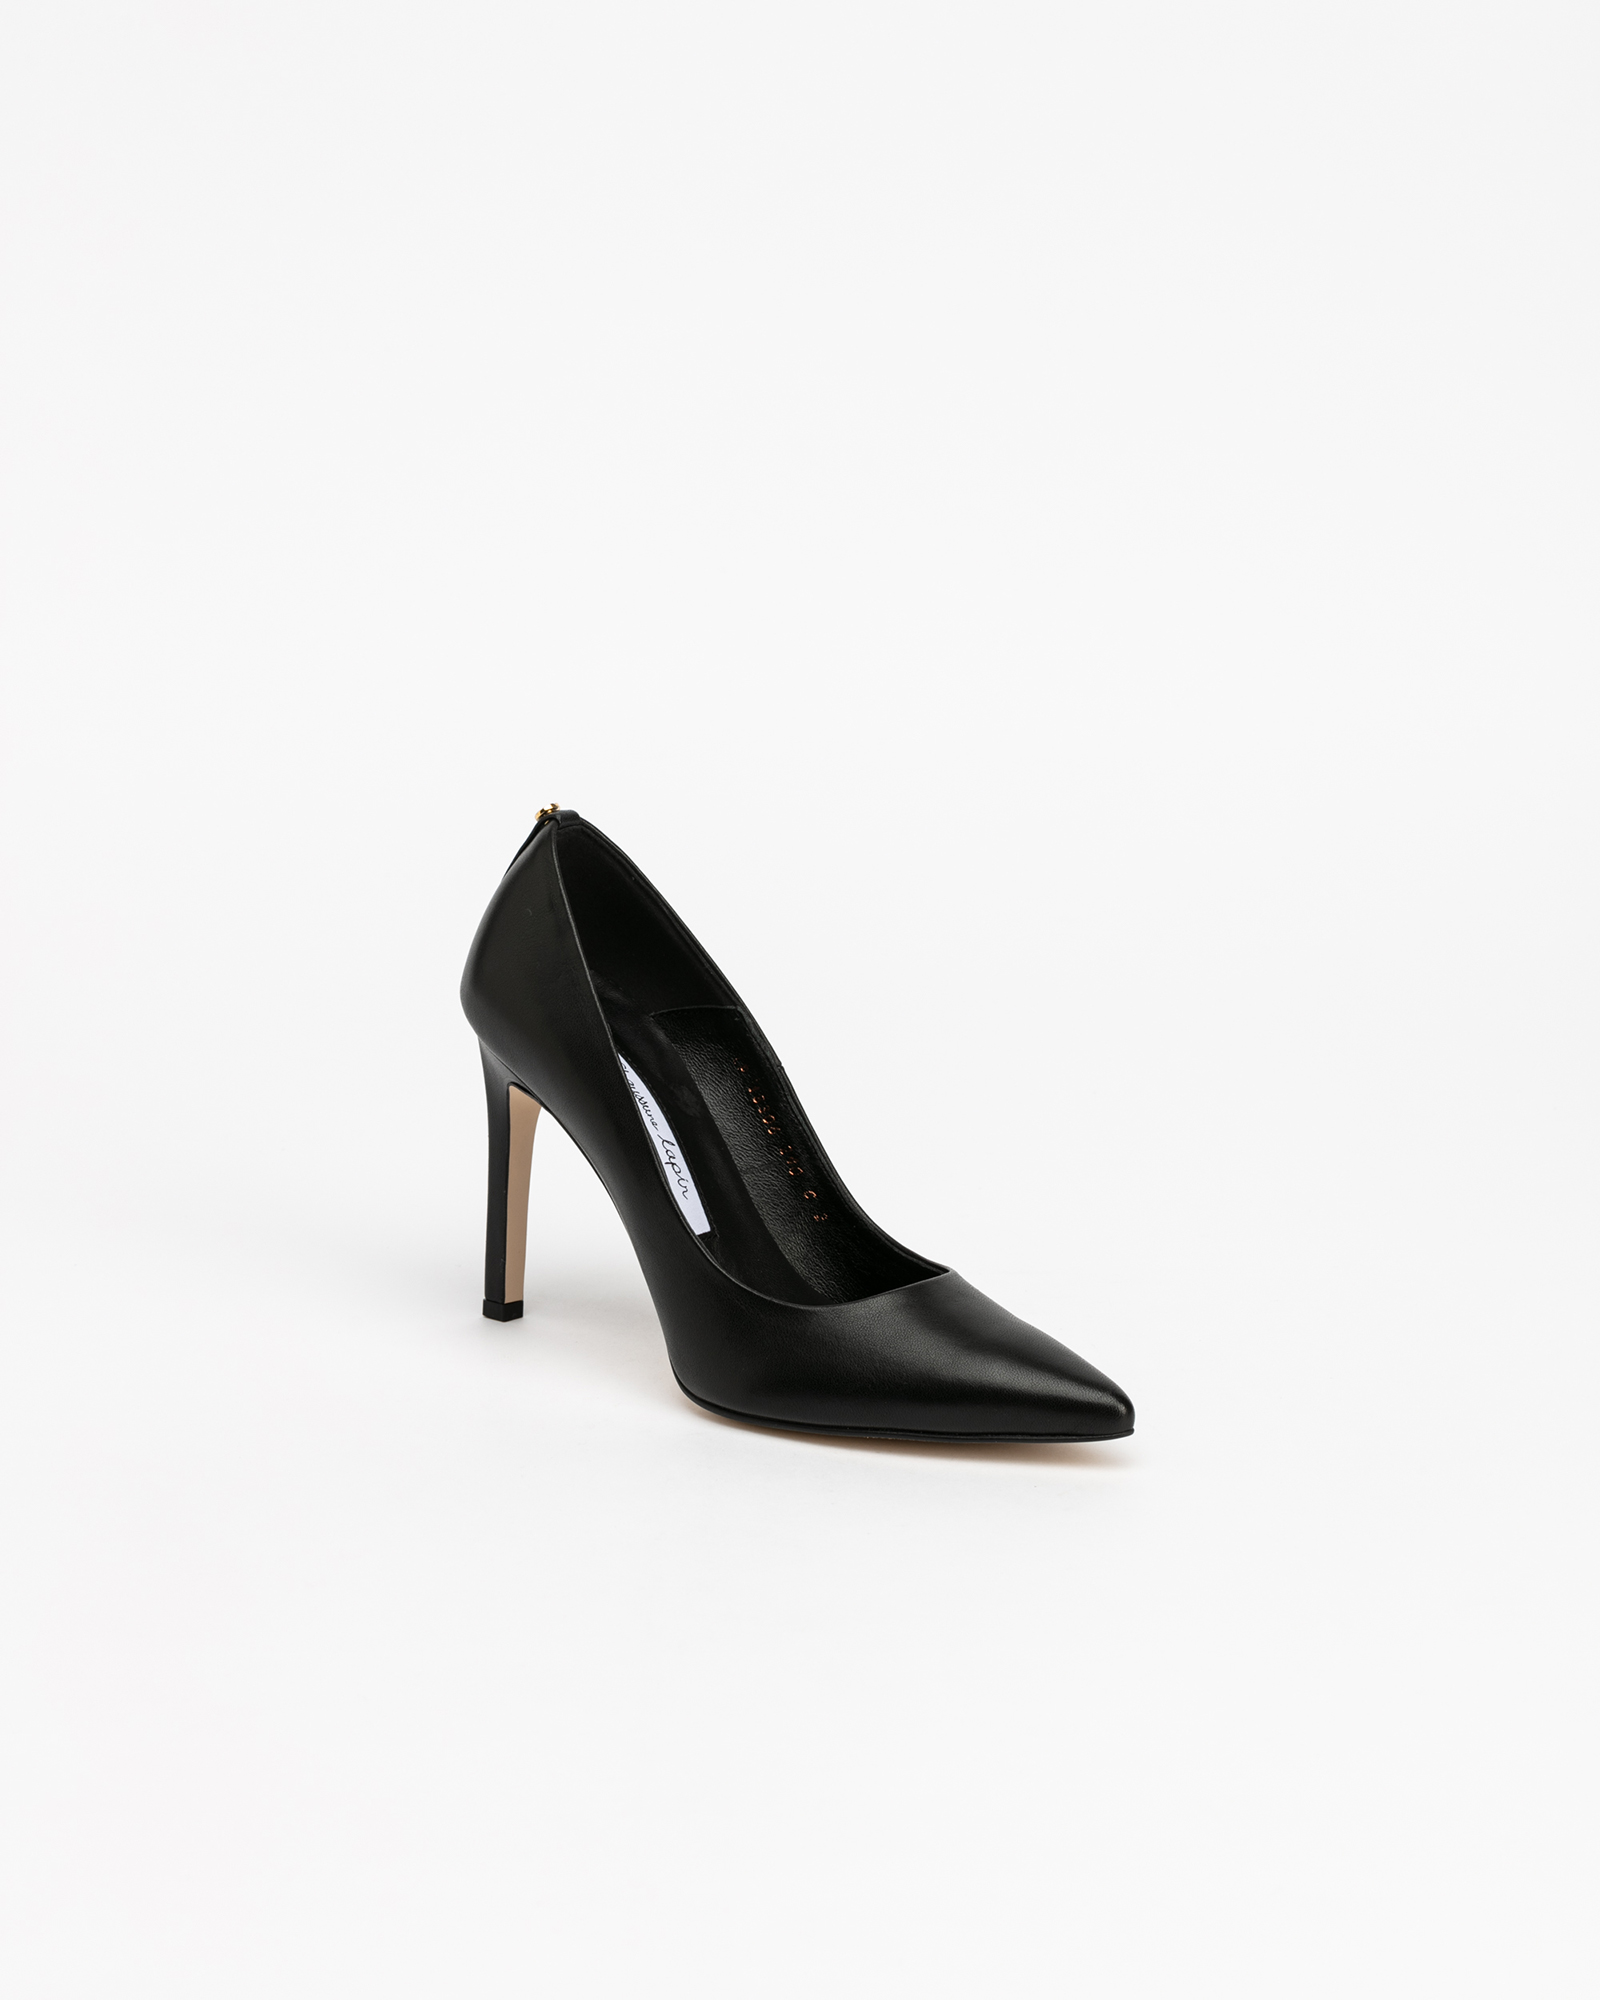 Boulon Pumps in Regular Black